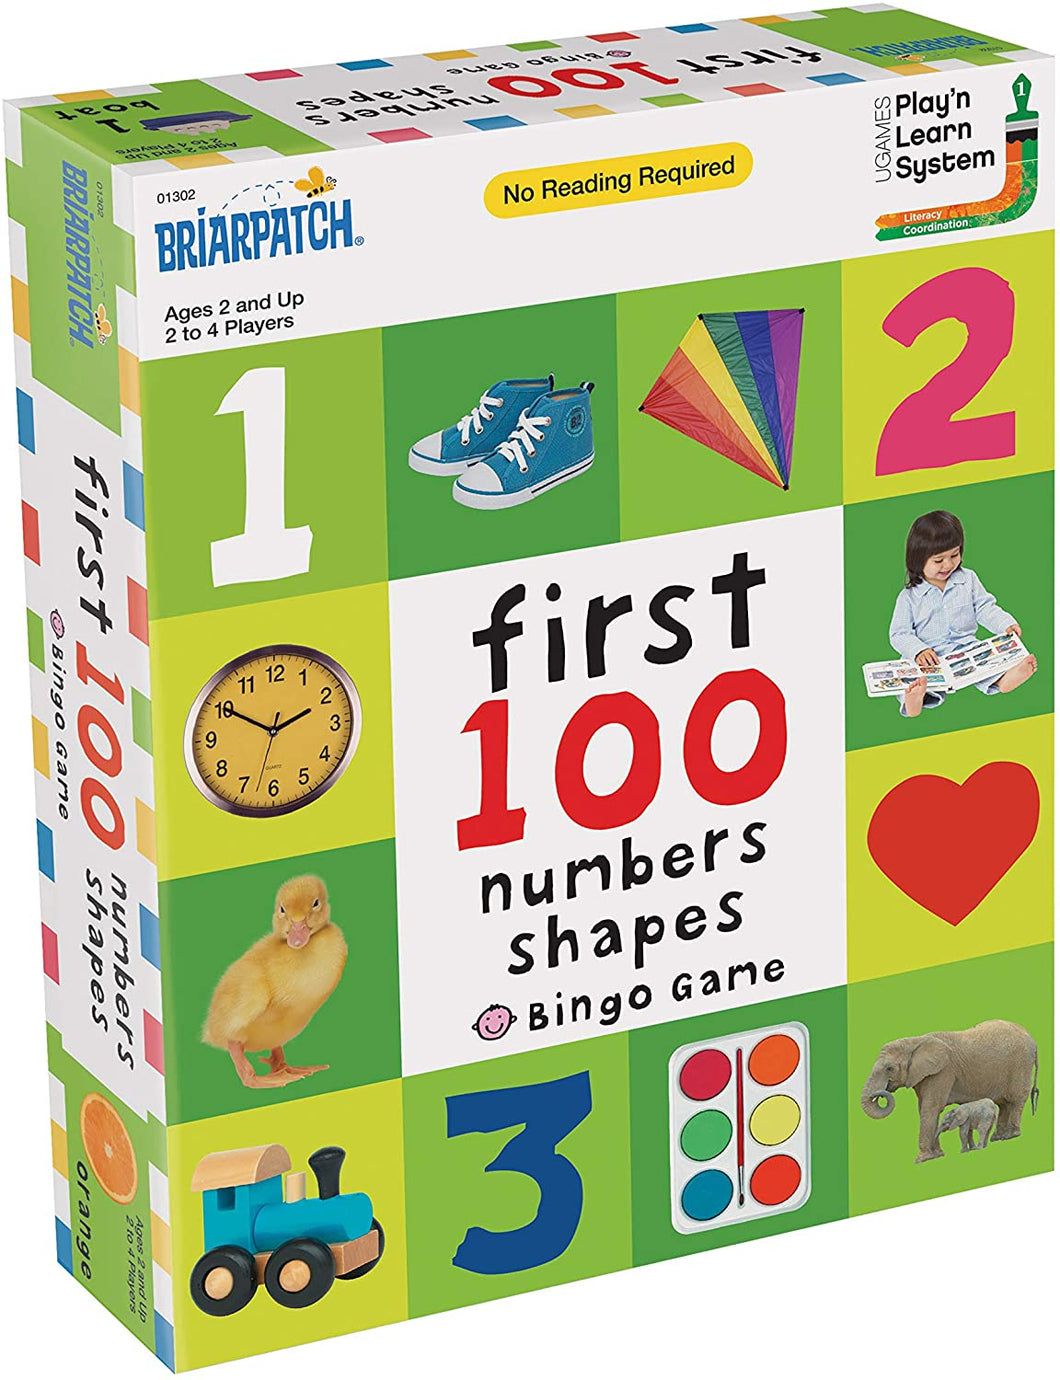 First 100 Numbers-Shapes Bingo Game